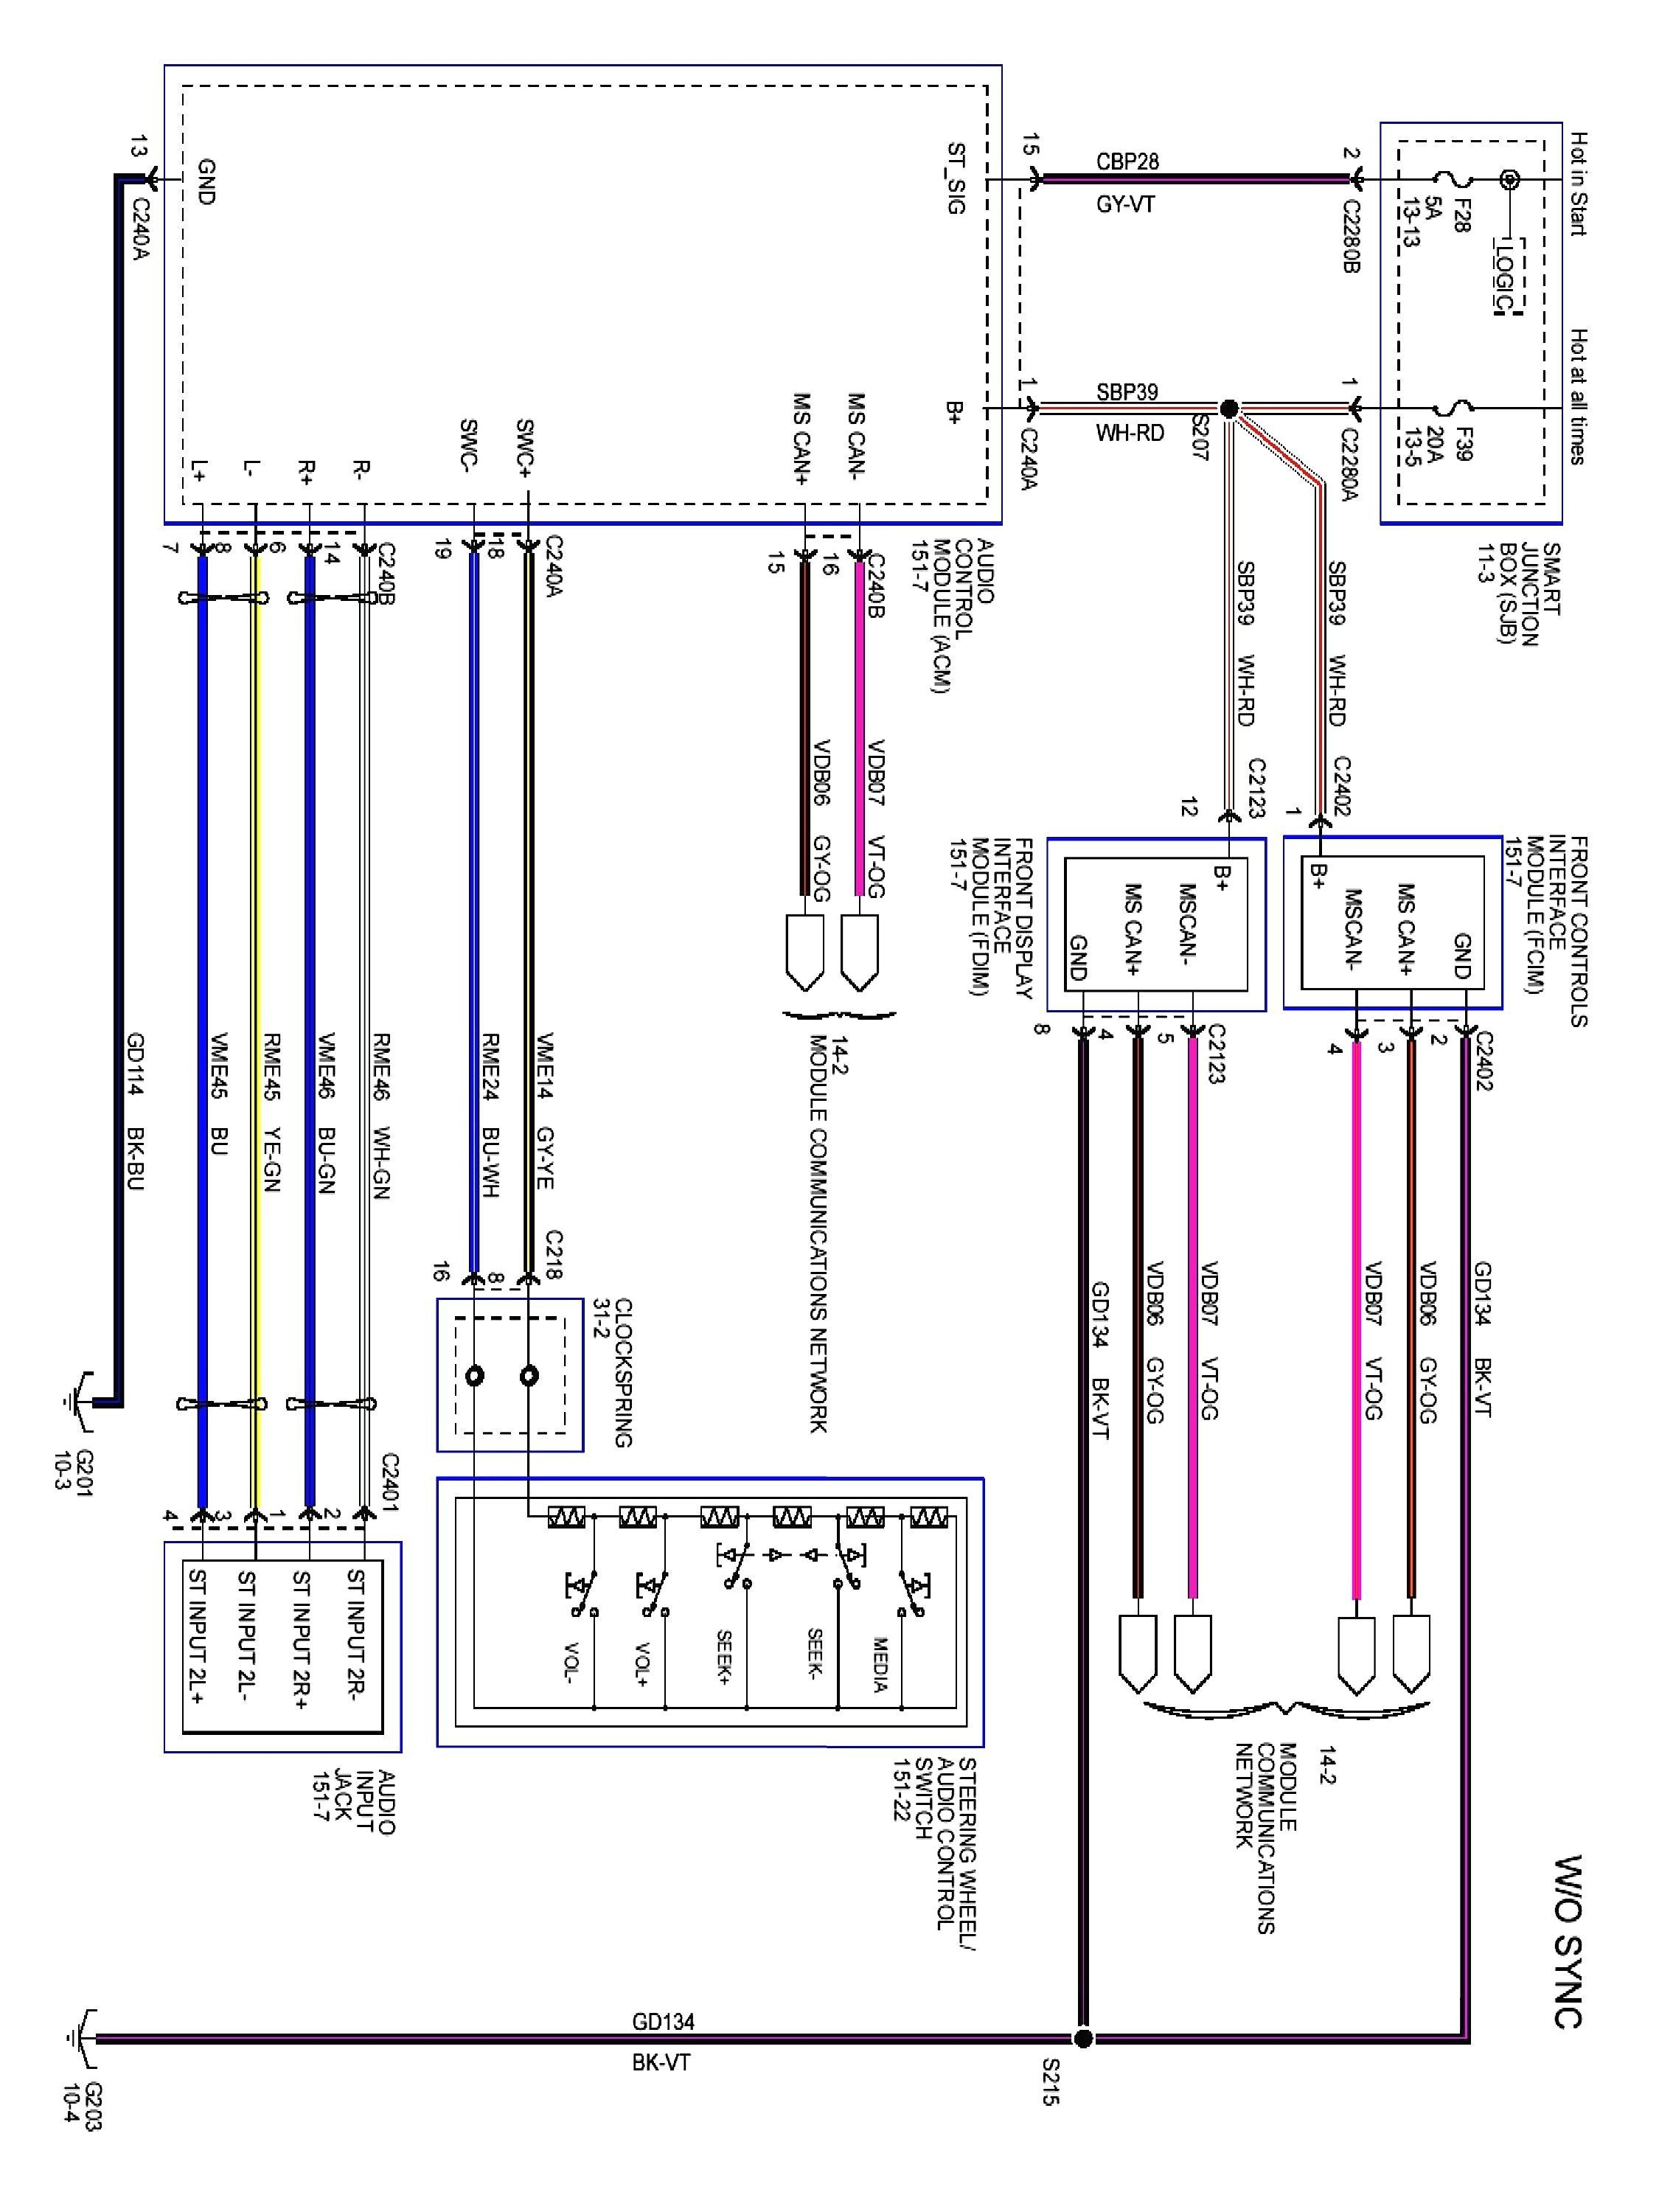 Wiring Diagram Cell100